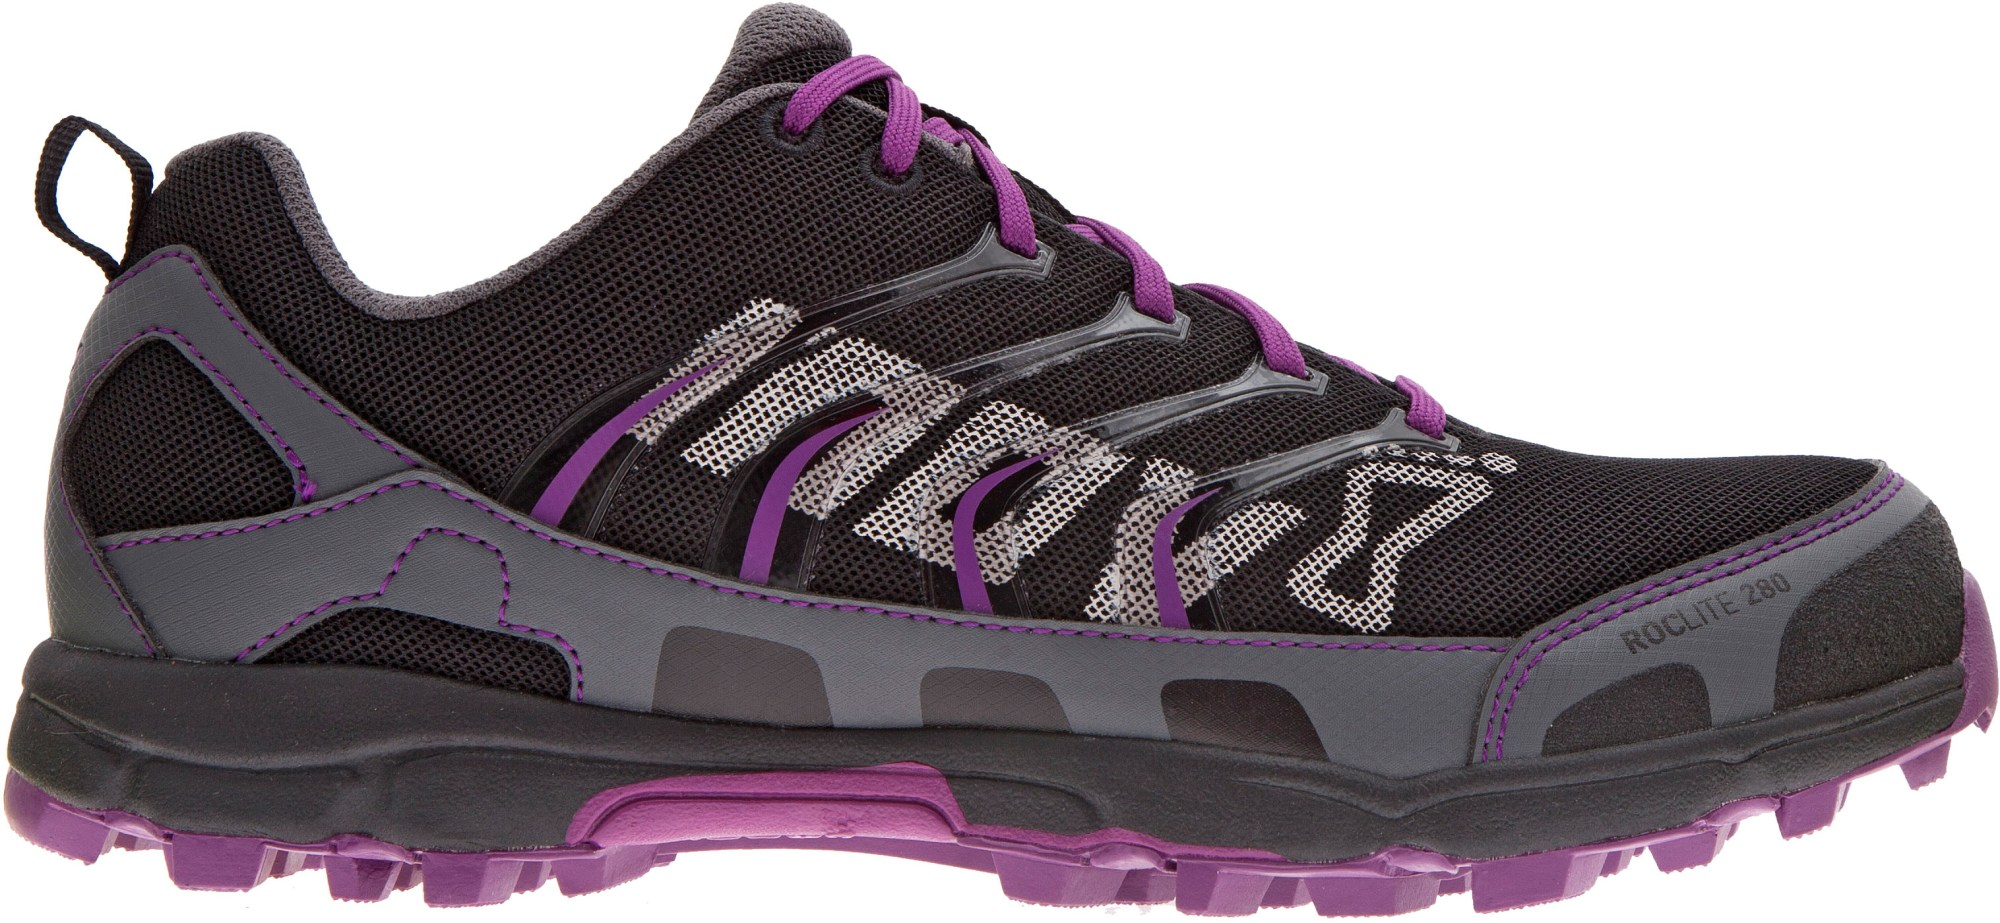 Wiggle   Inov-8 Women's Roclite 280 Shoes (AW15)   Offroad Running Shoes